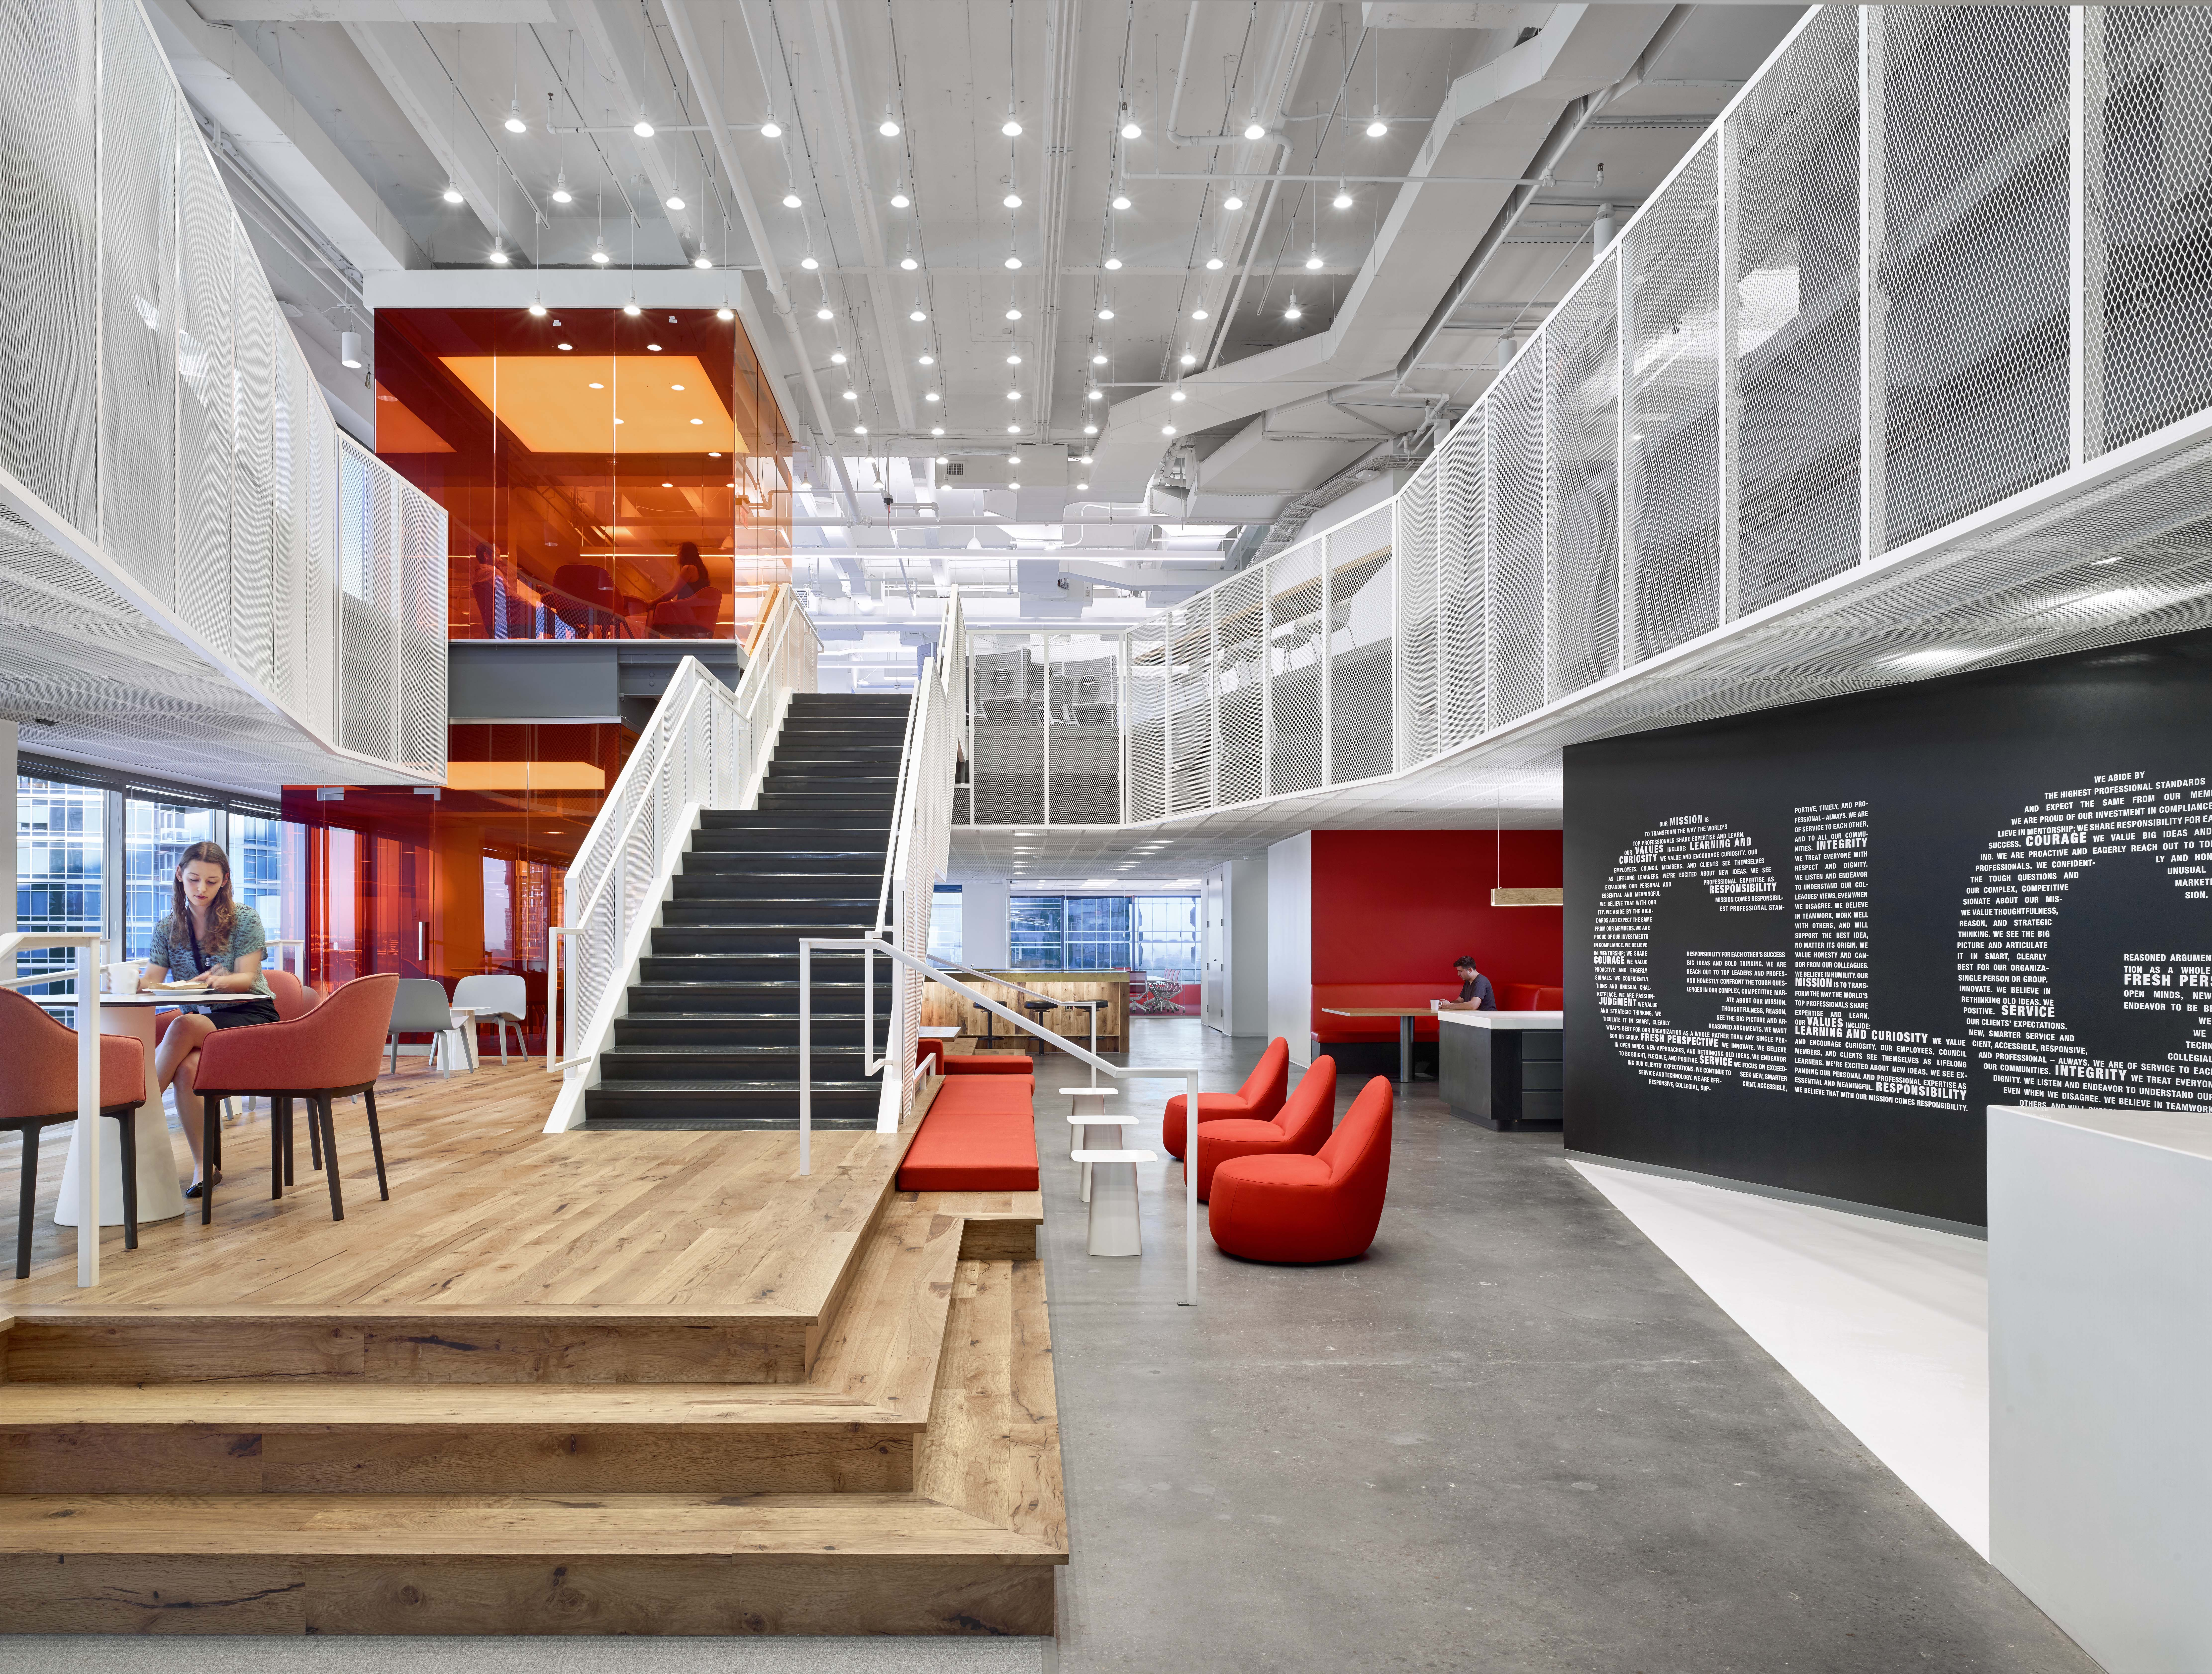 googleplex architect designs new downtown austin office space glg austin photo by casey dunn courtesy of glg gerson lehrman group inc